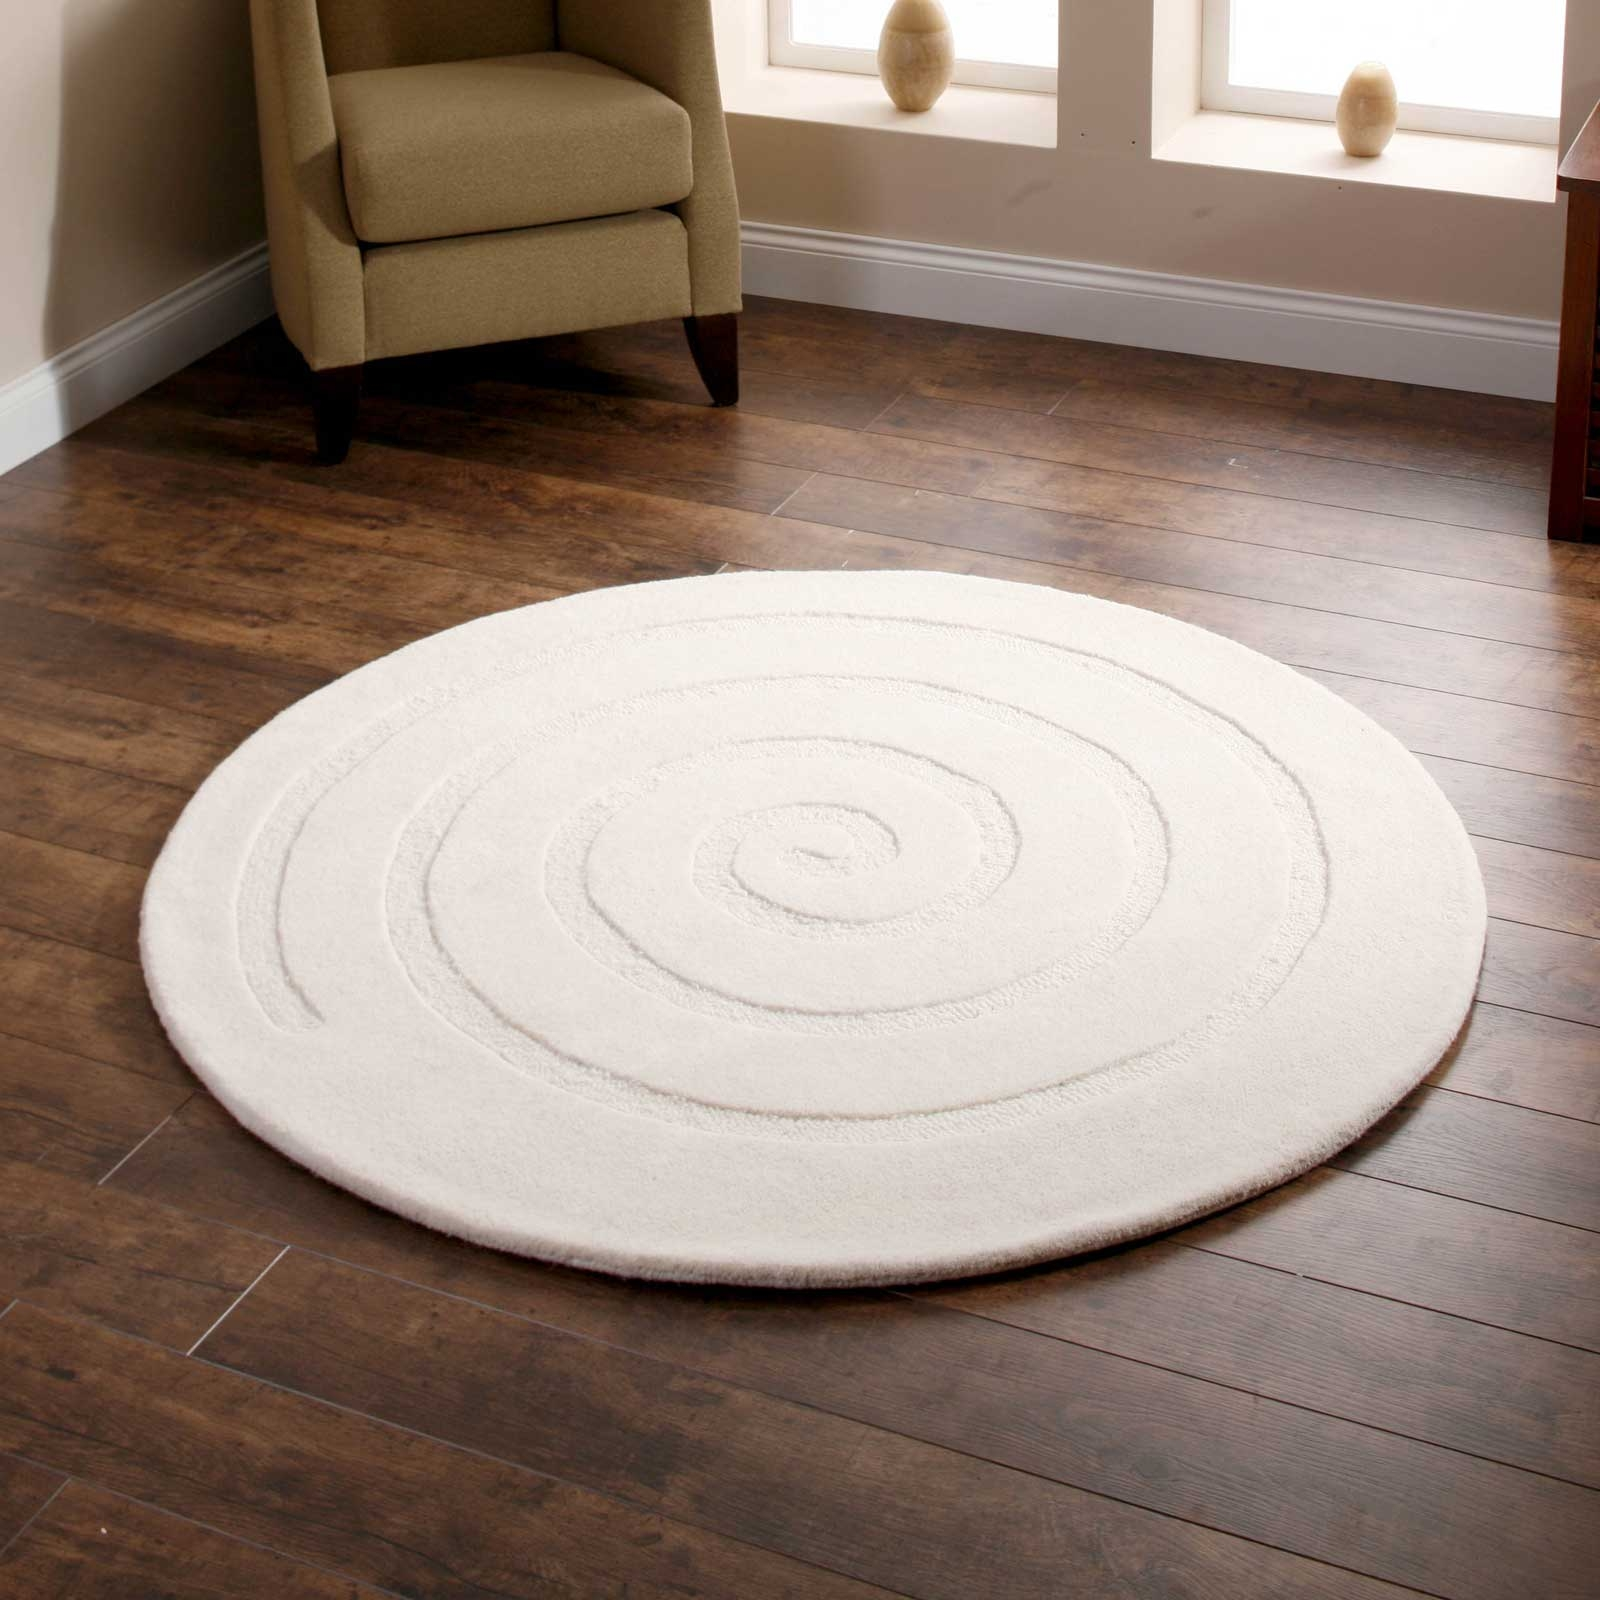 Large Round Rugs Uk Roselawnlutheran Within Small Circular Rugs (Image 9 of 15)